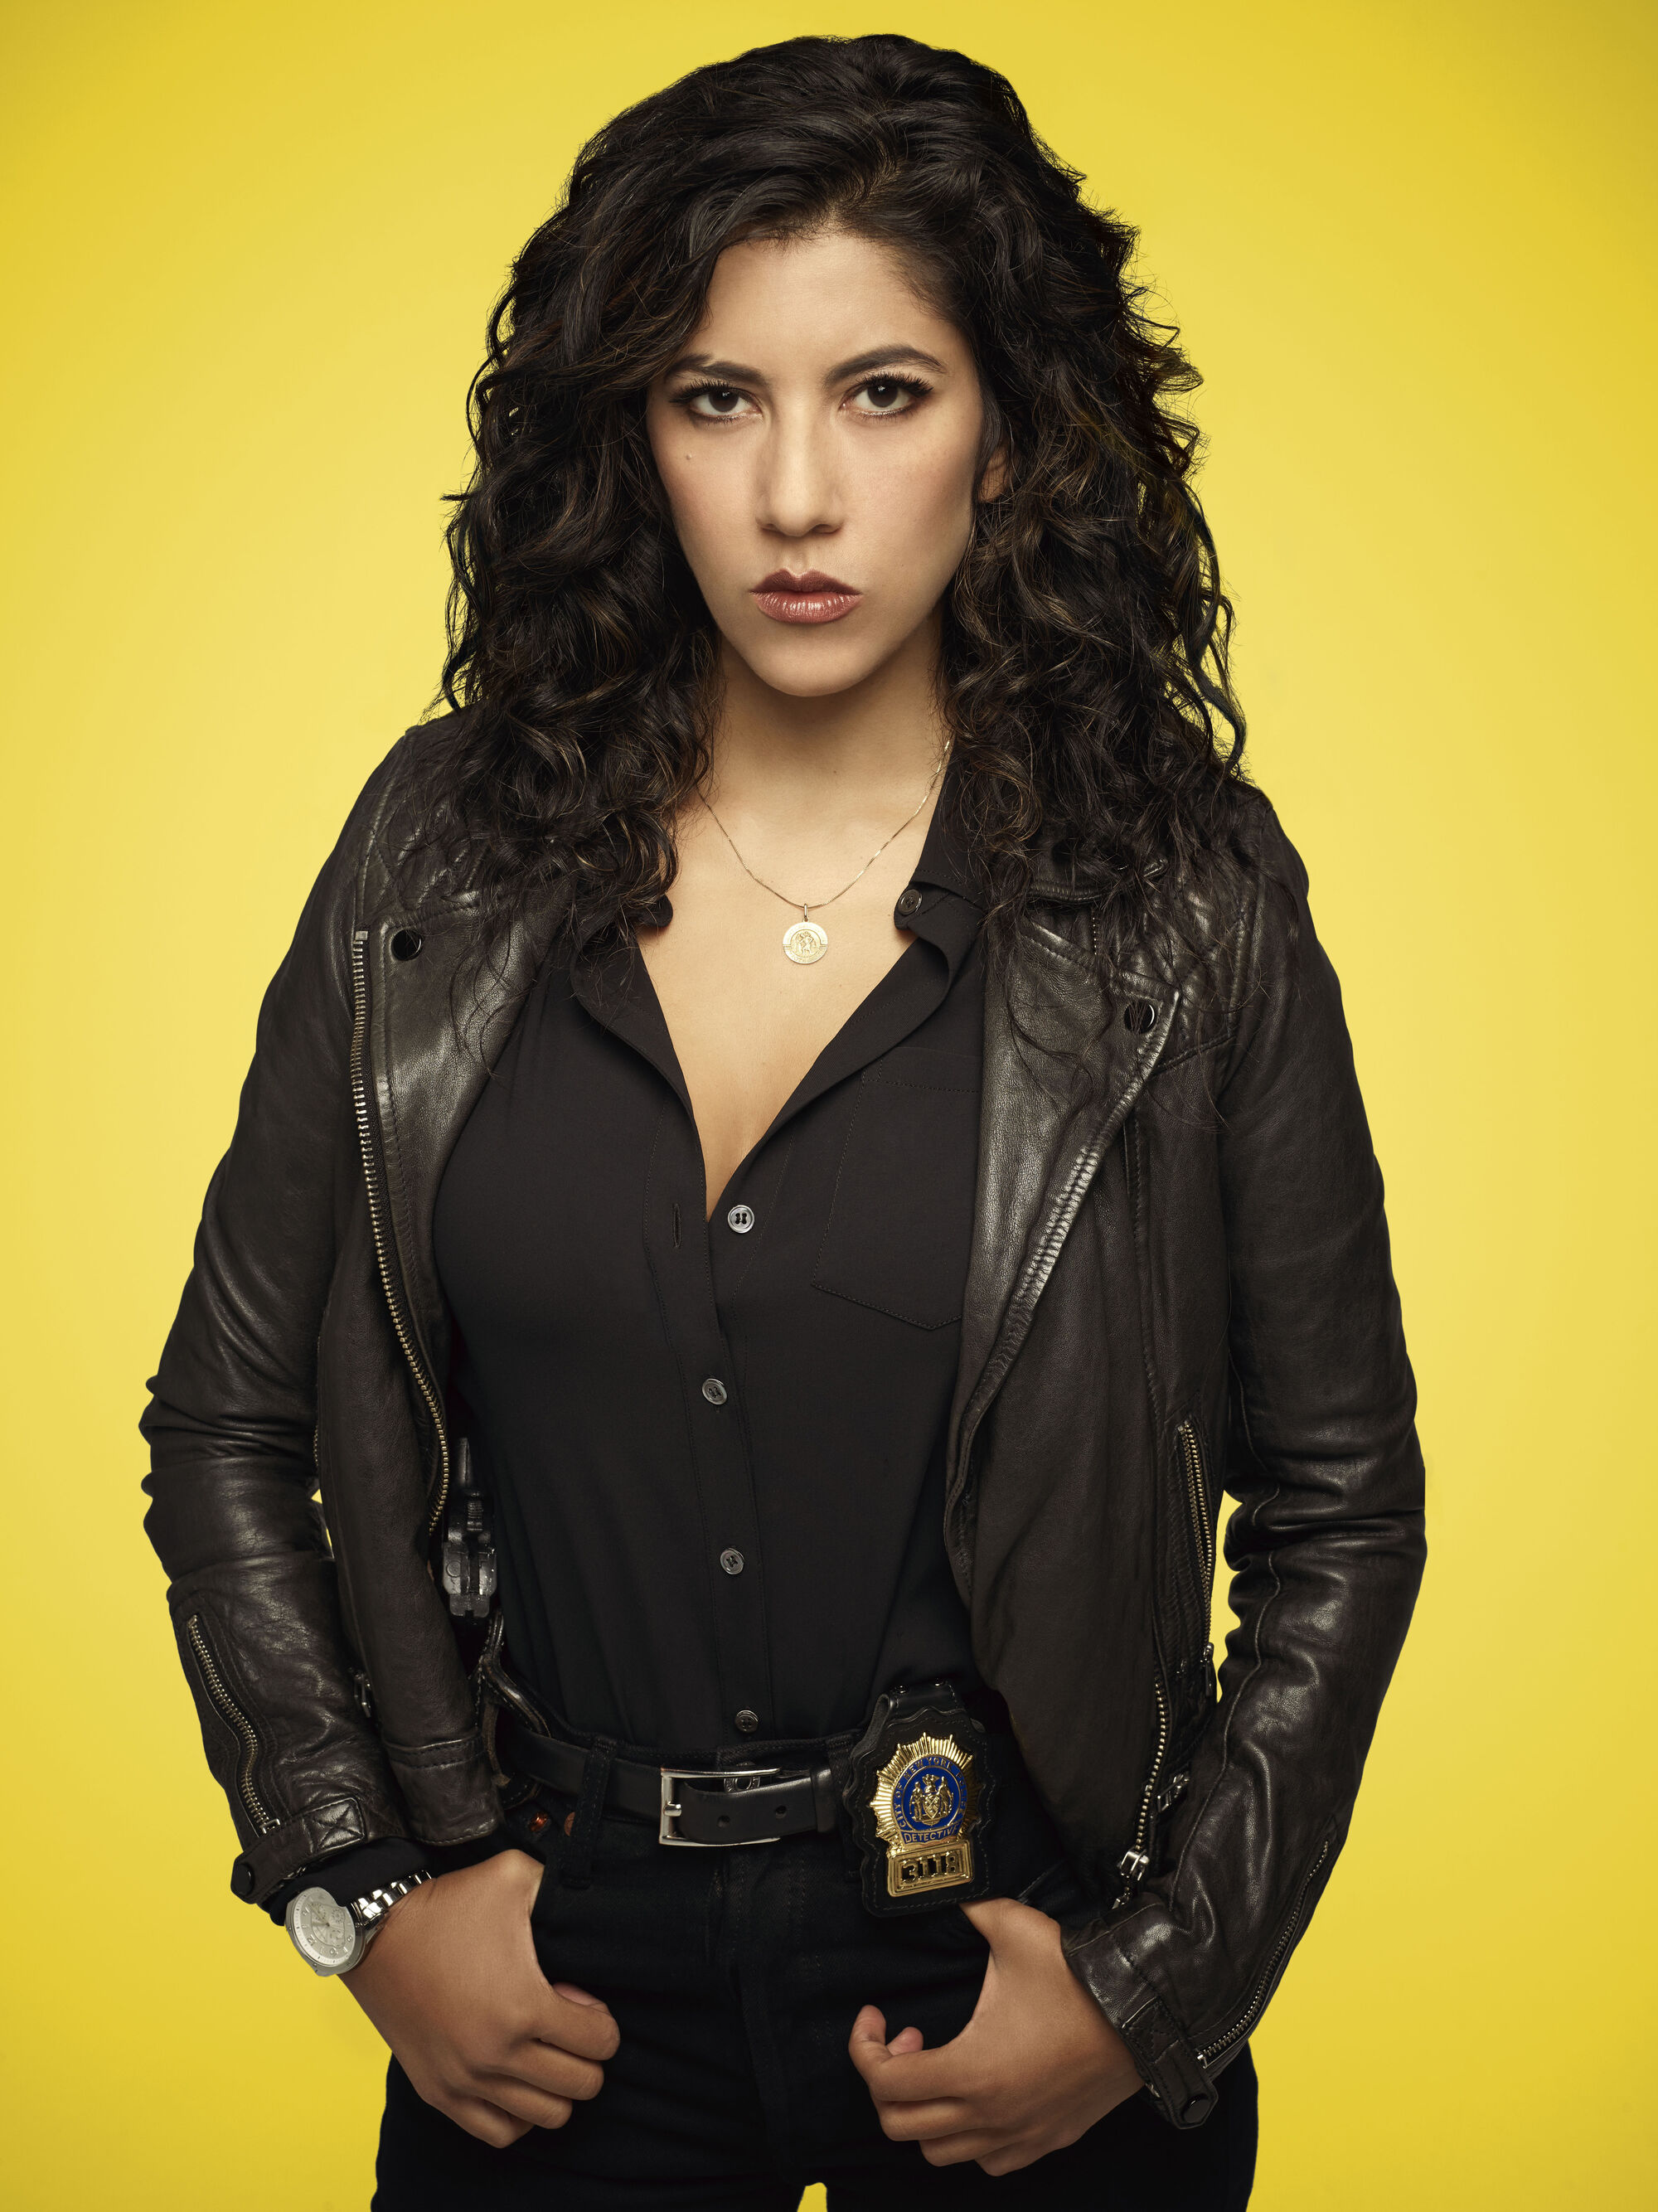 brooklyn 99 season 4 episode 14 wiki